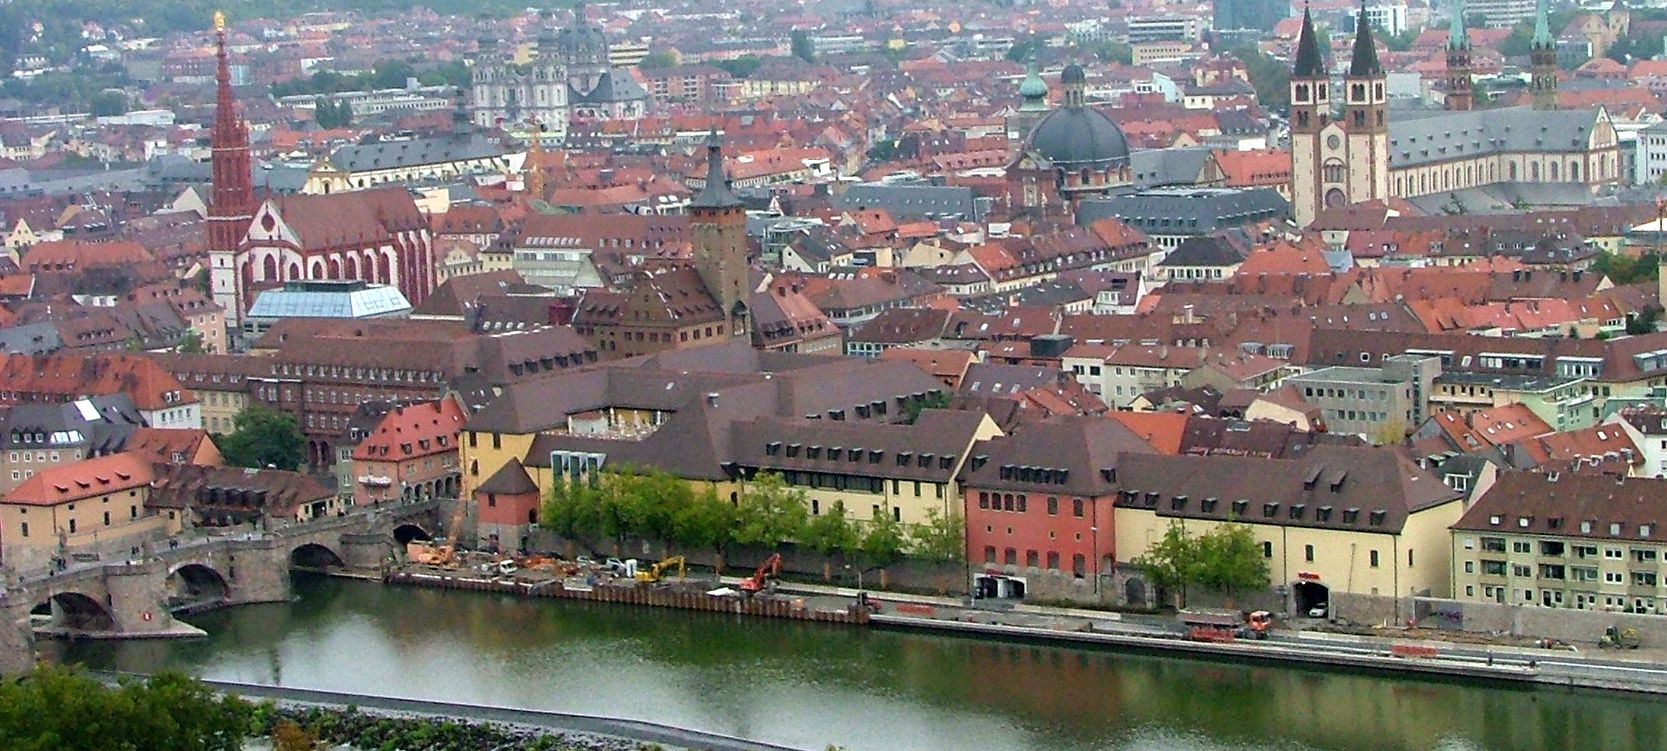 Wurzburg Old Bridge and the city from the fortress